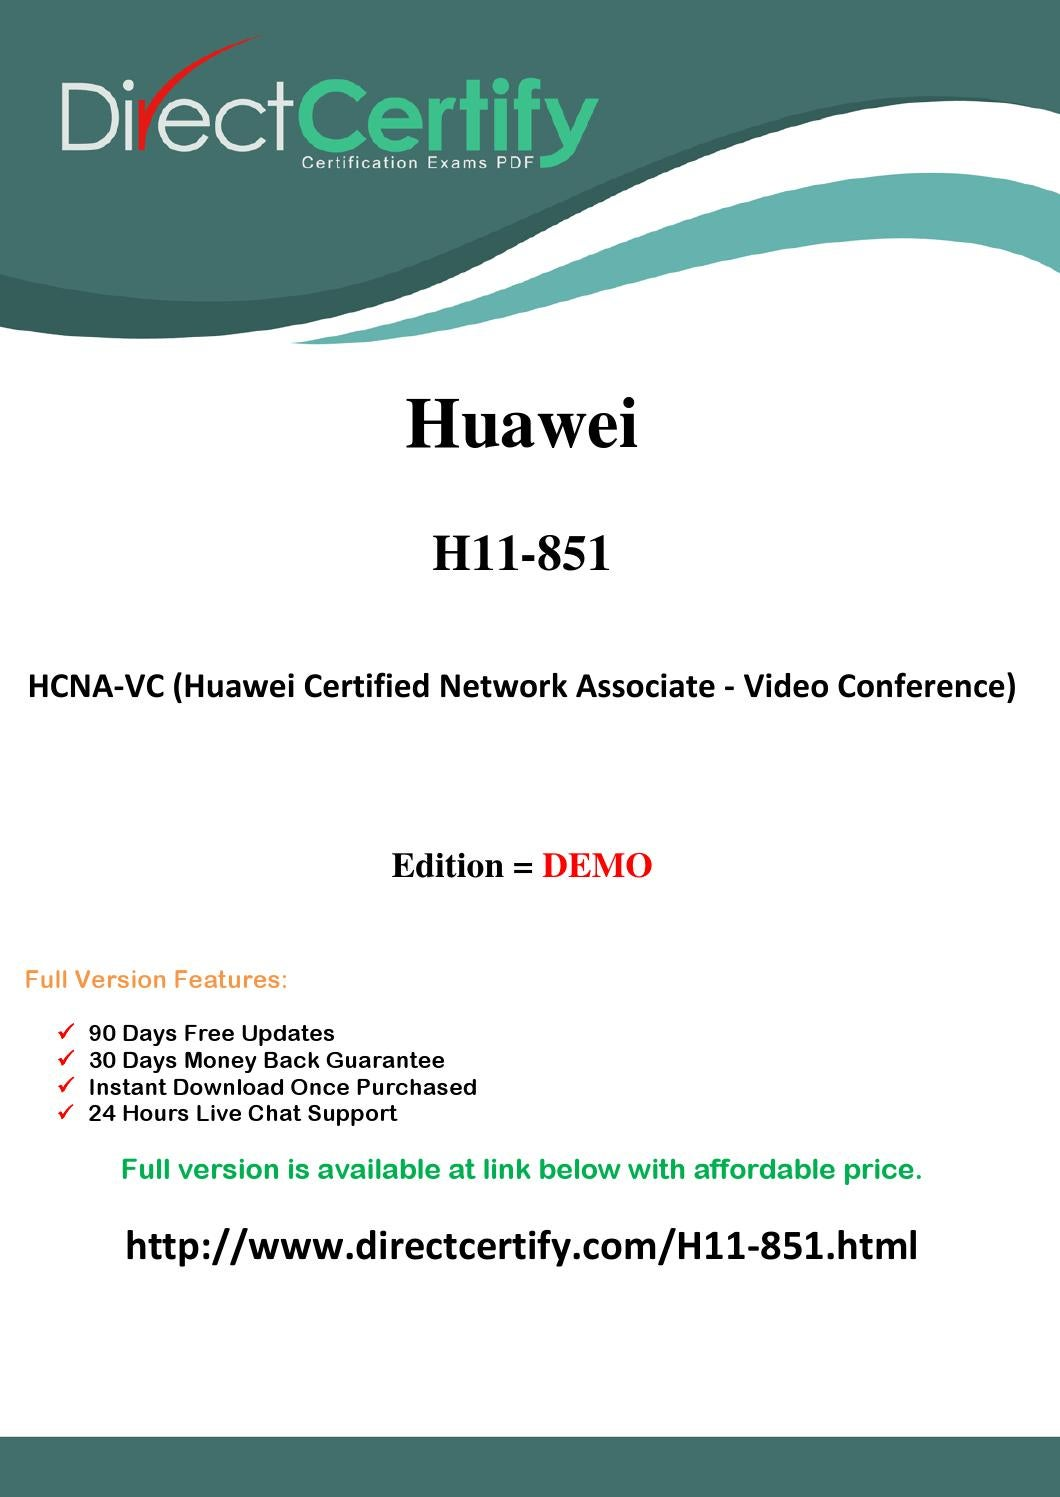 H11 851 directcertify exam questions & answers (pdf) by